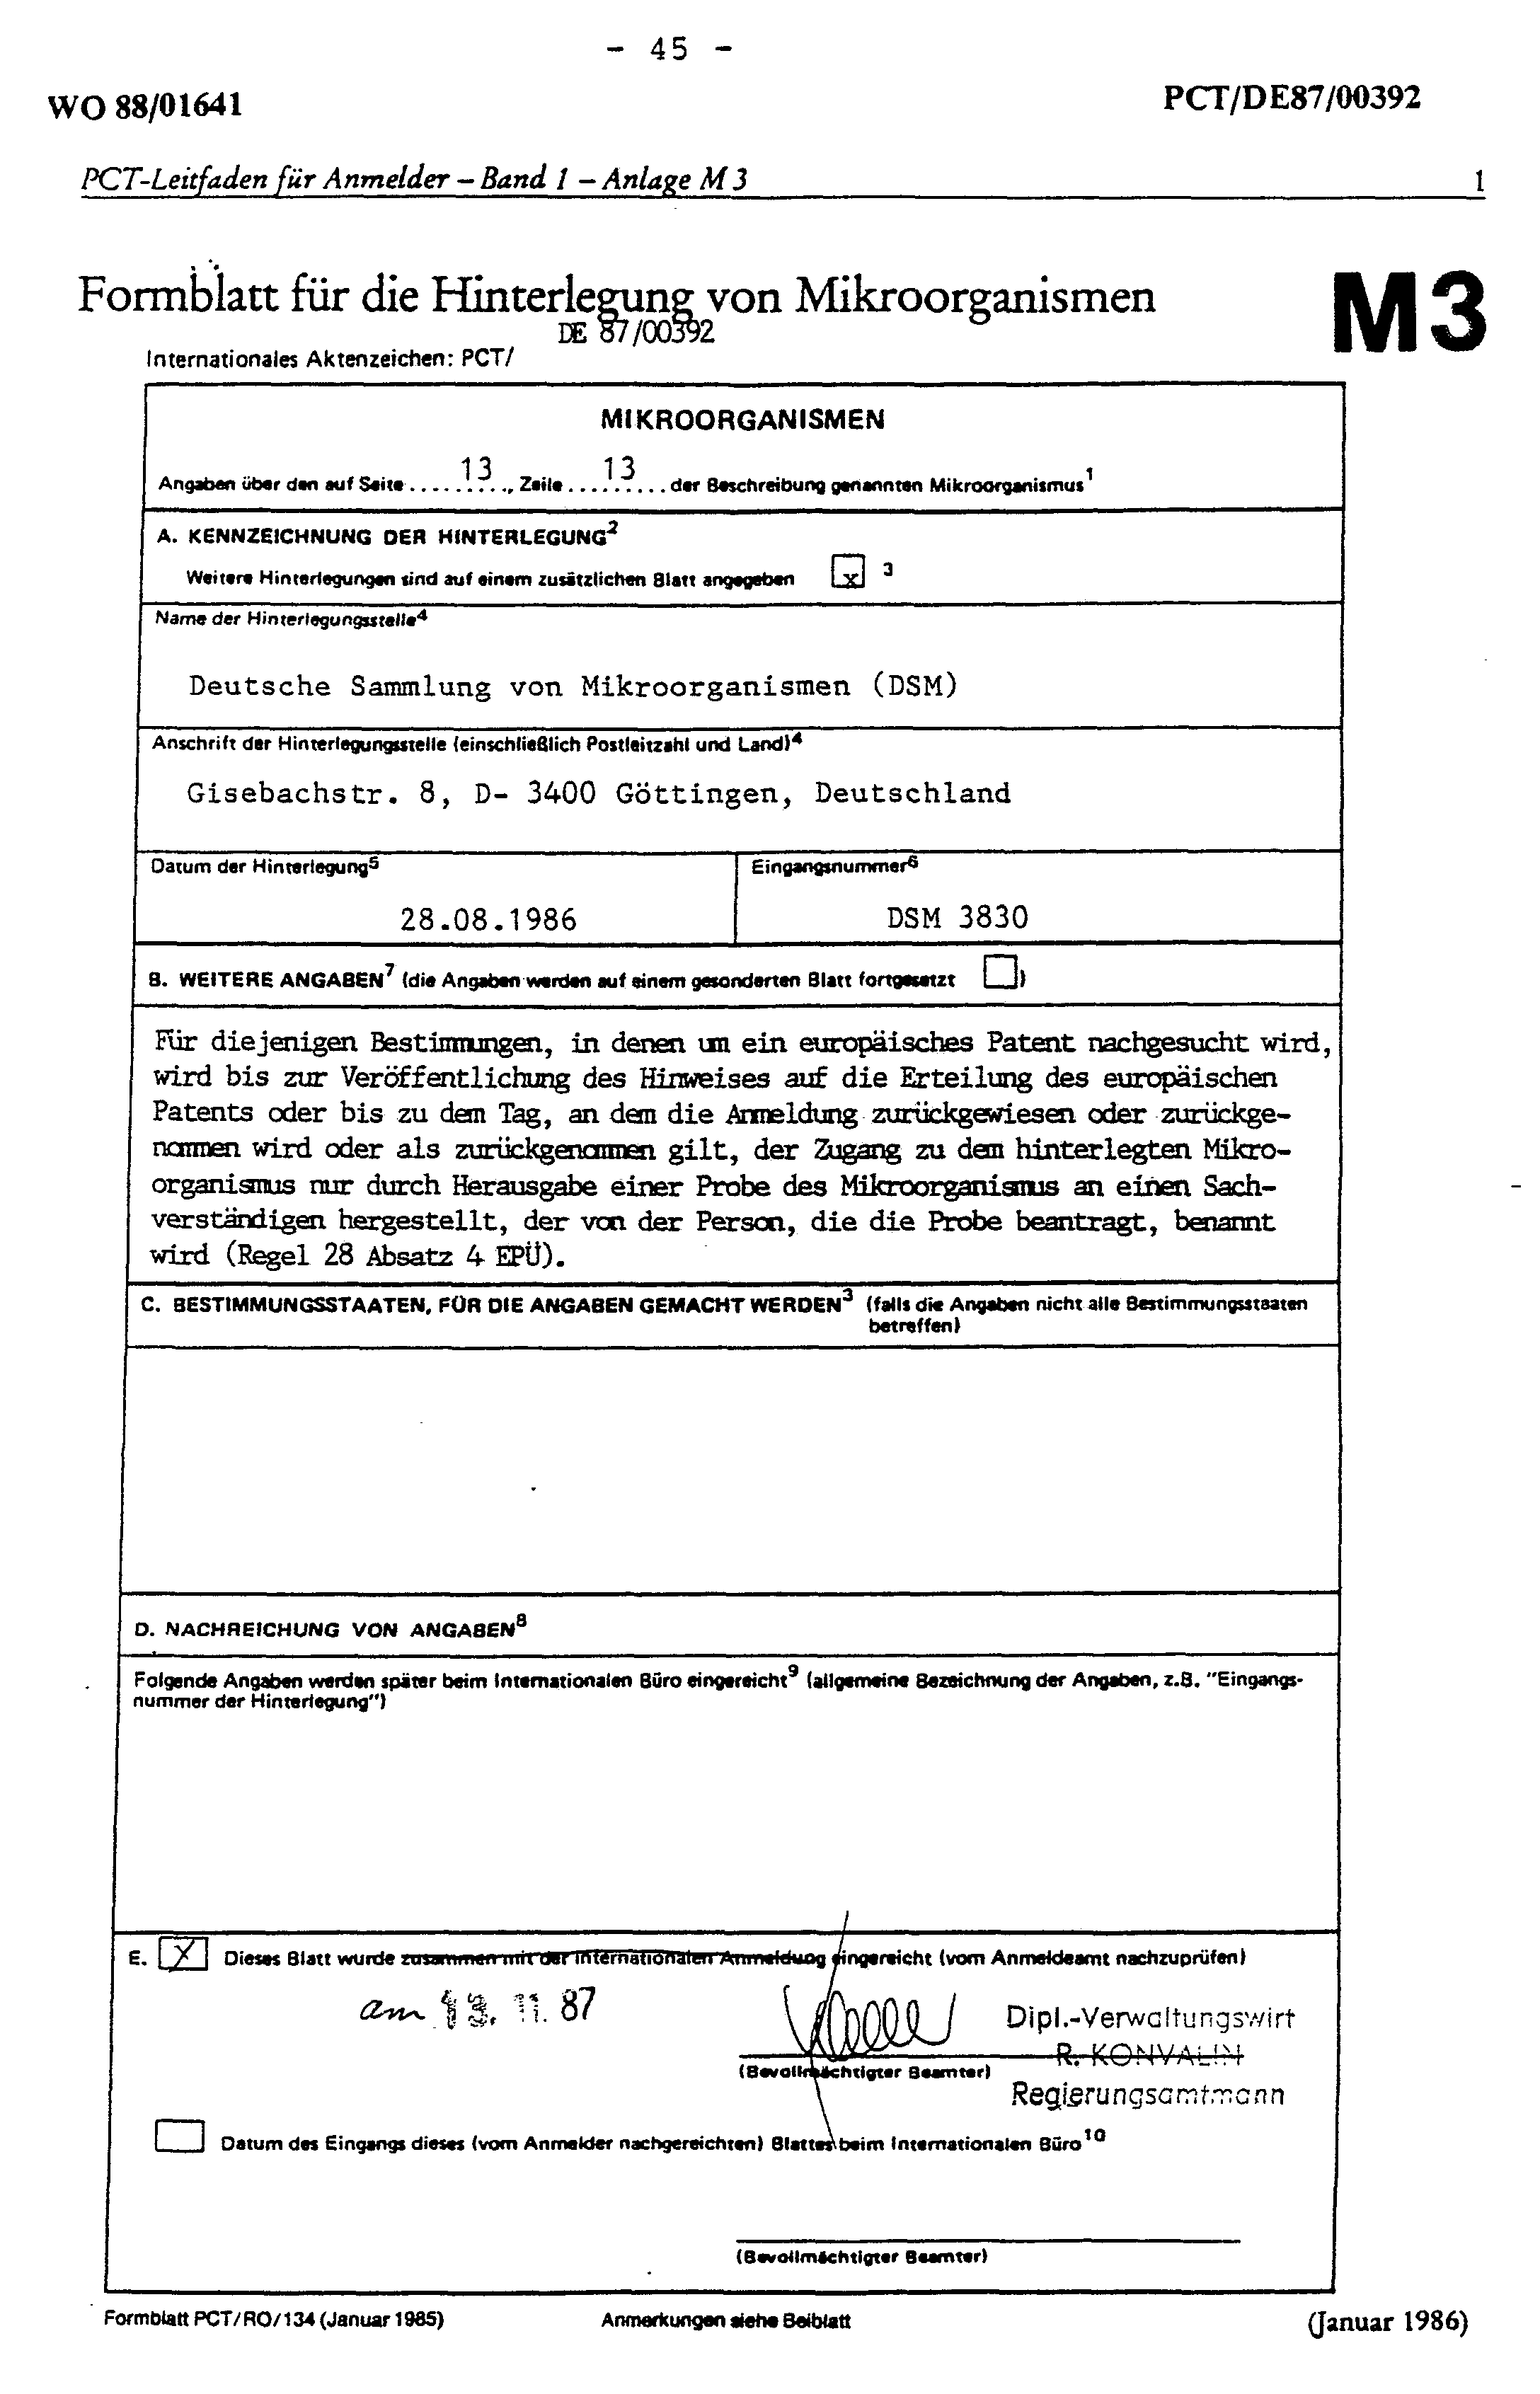 WO1988001641A1 - Micro-organisms and plasmids for producing 2,4